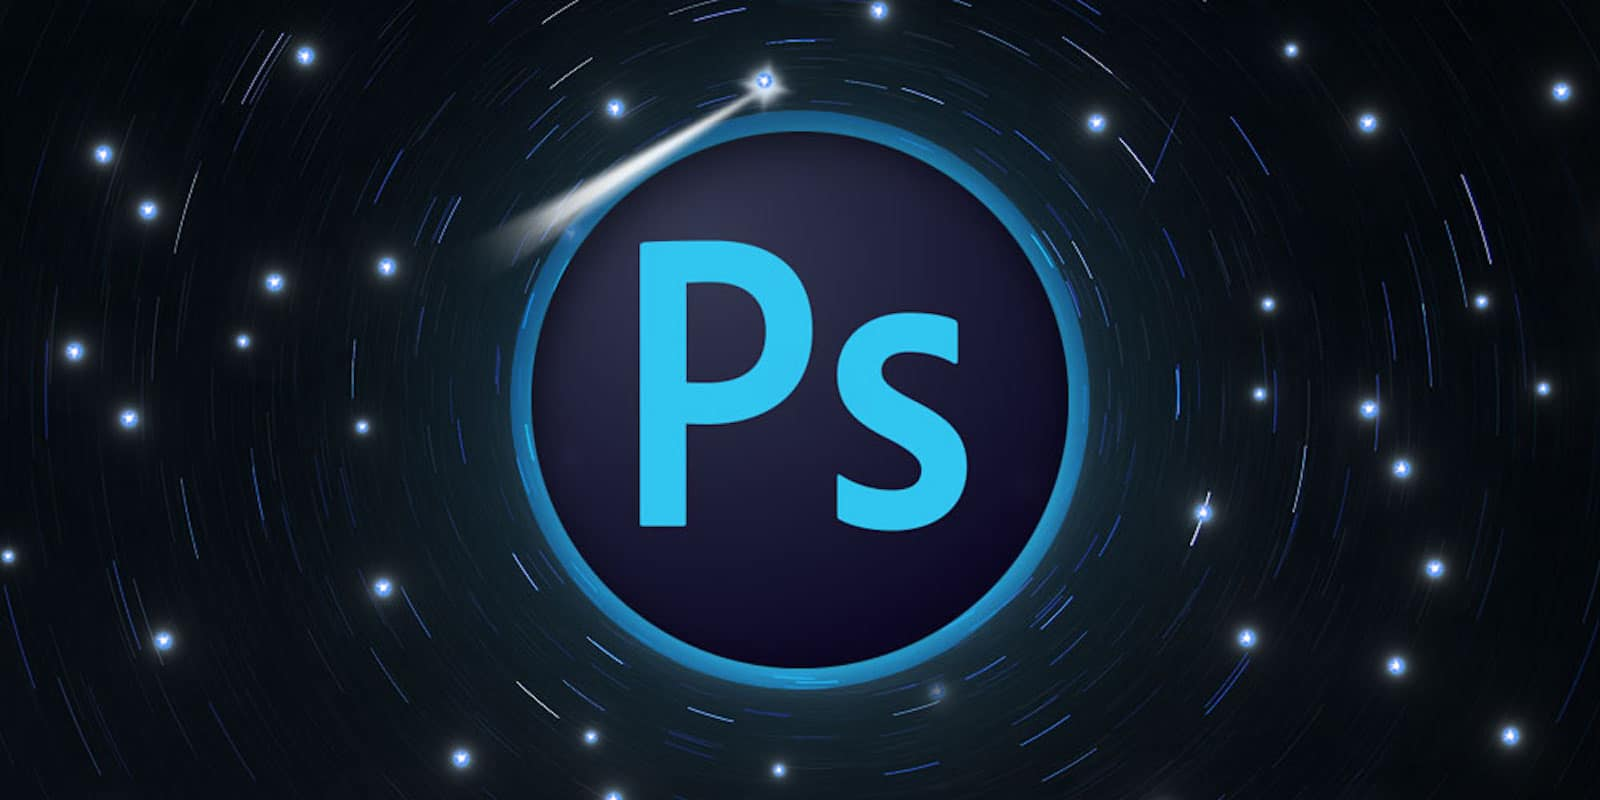 Learn the many facets of Photoshop through hands-on lessons.